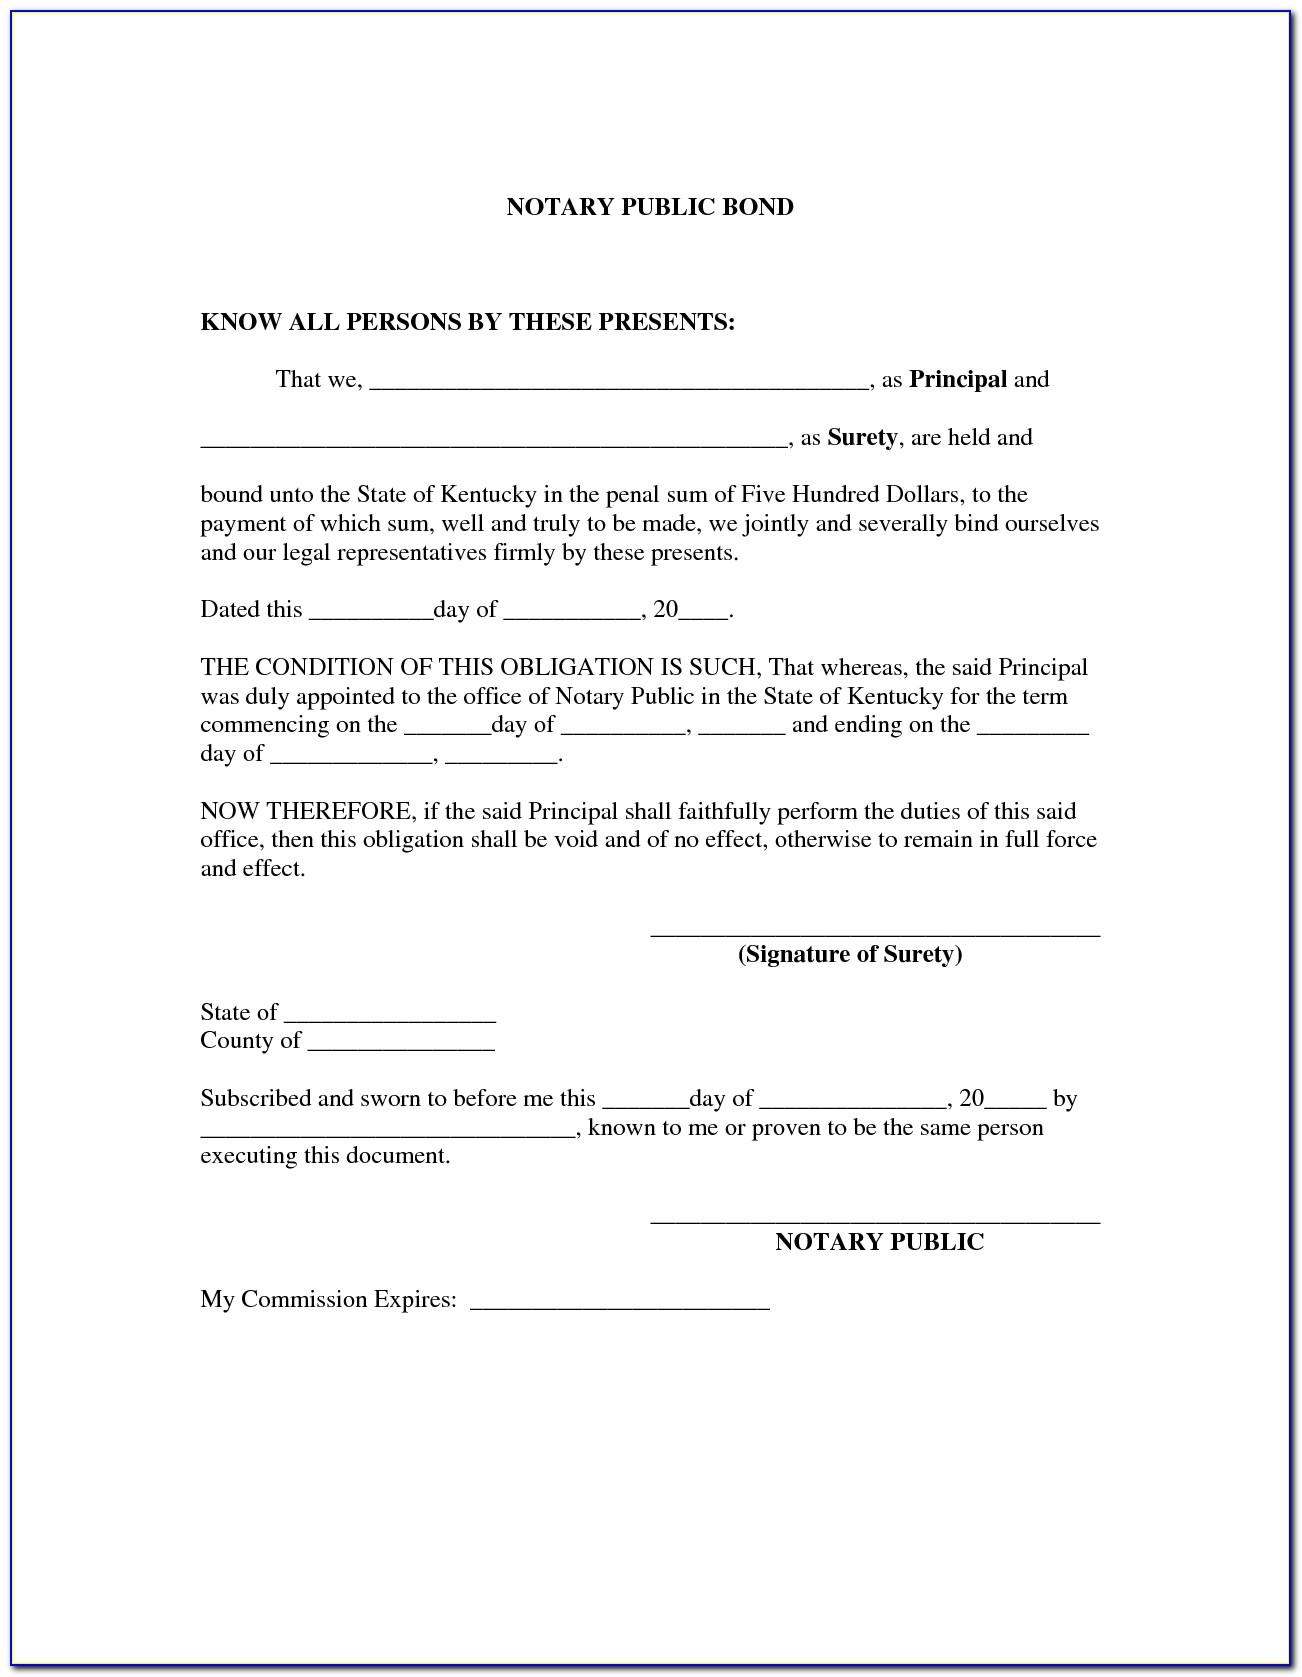 notary public acknowledgement form philippines